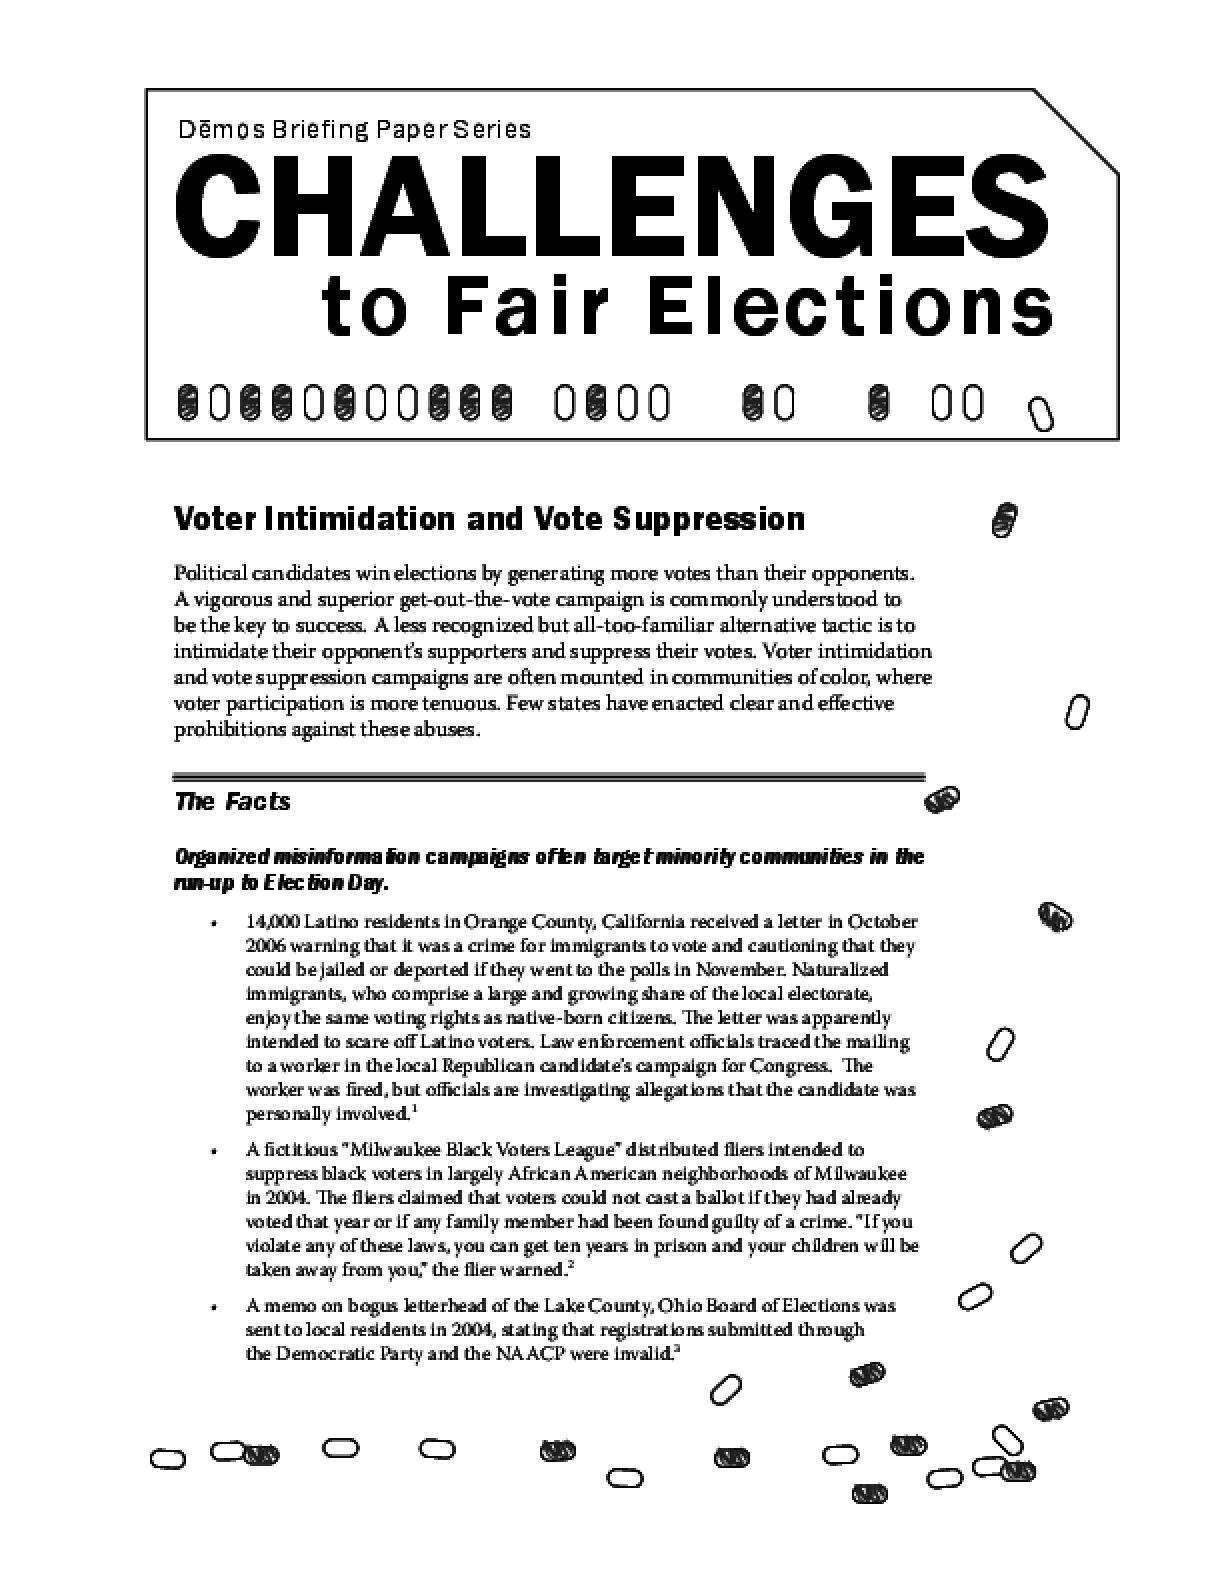 Challenges to Fair Elections 7: Voter Intimidation and Vote Suppression